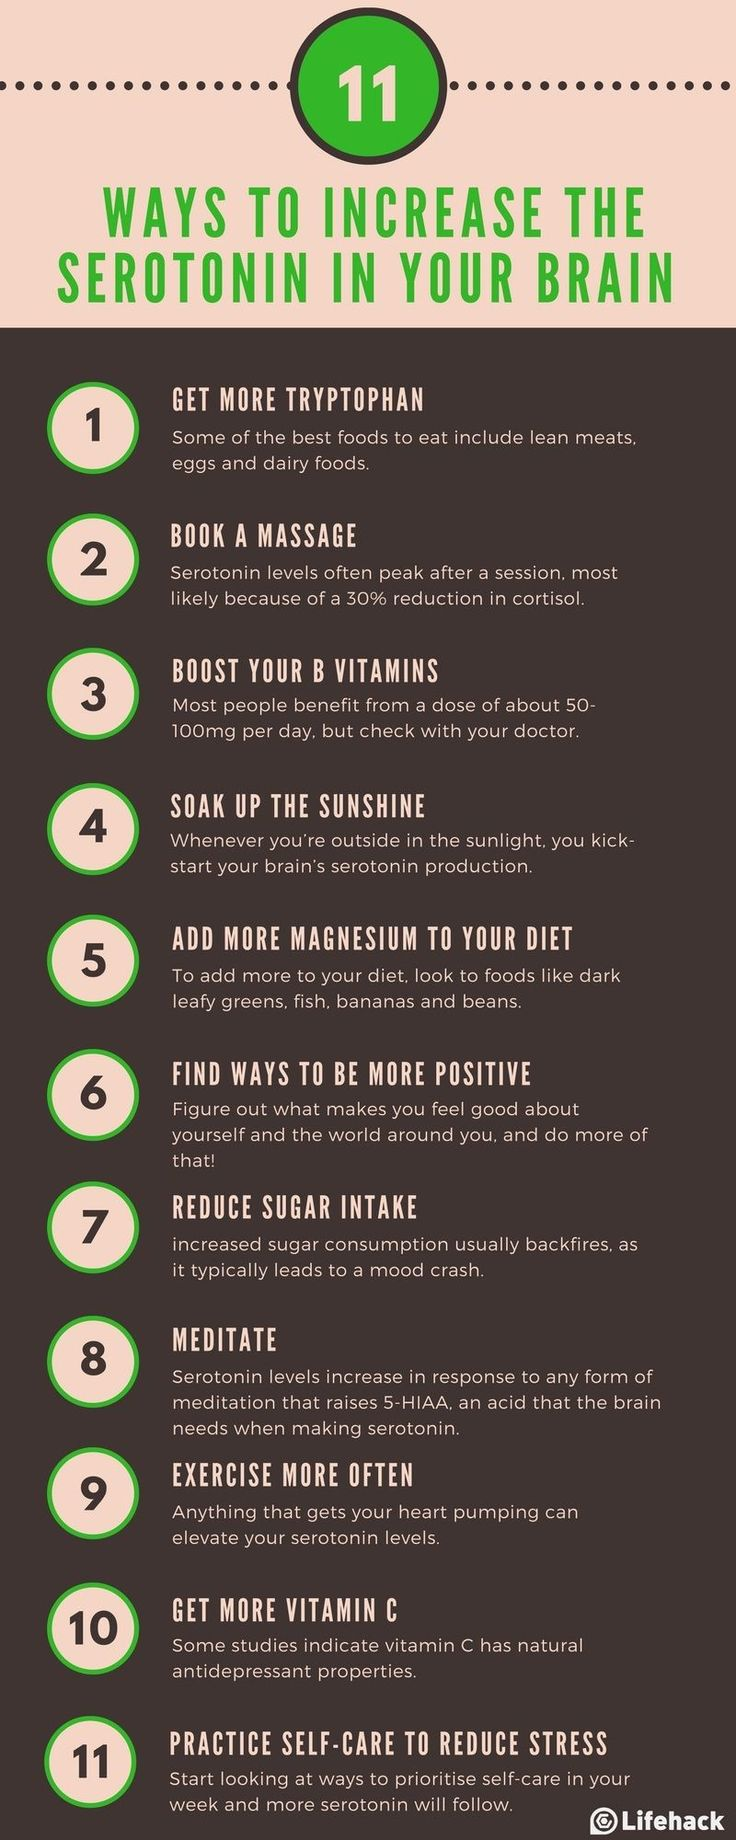 Low serotonin influences everything from your appetite to your sleep cycle, memory, sex drive, and (of course) mood. Here are 11 ways to give it a boost.